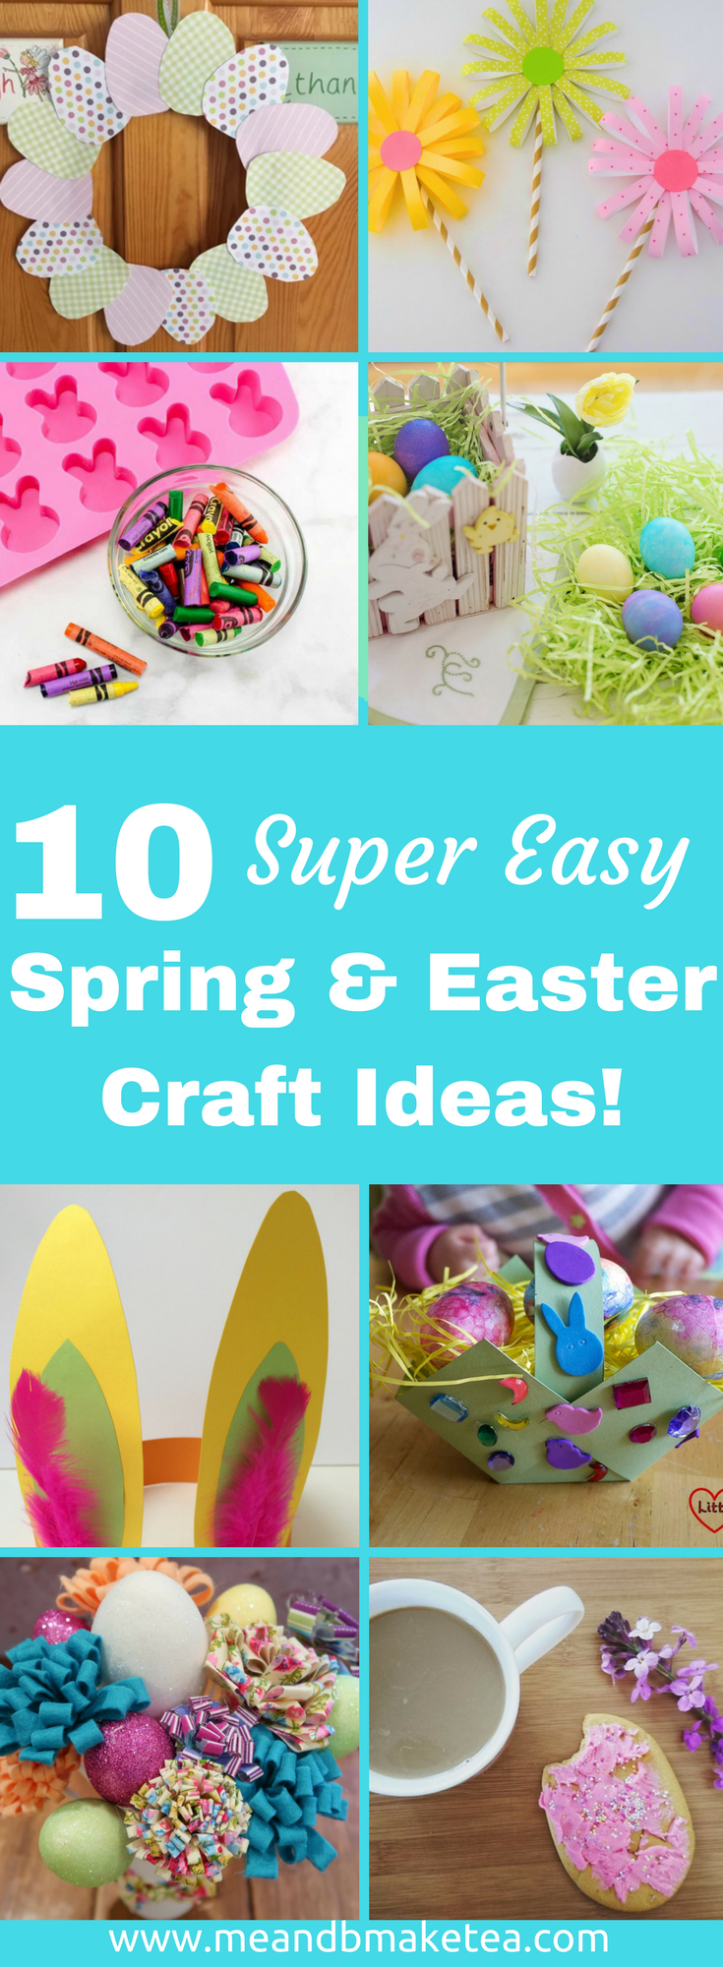 easter craft ideas round up for kids during holidays